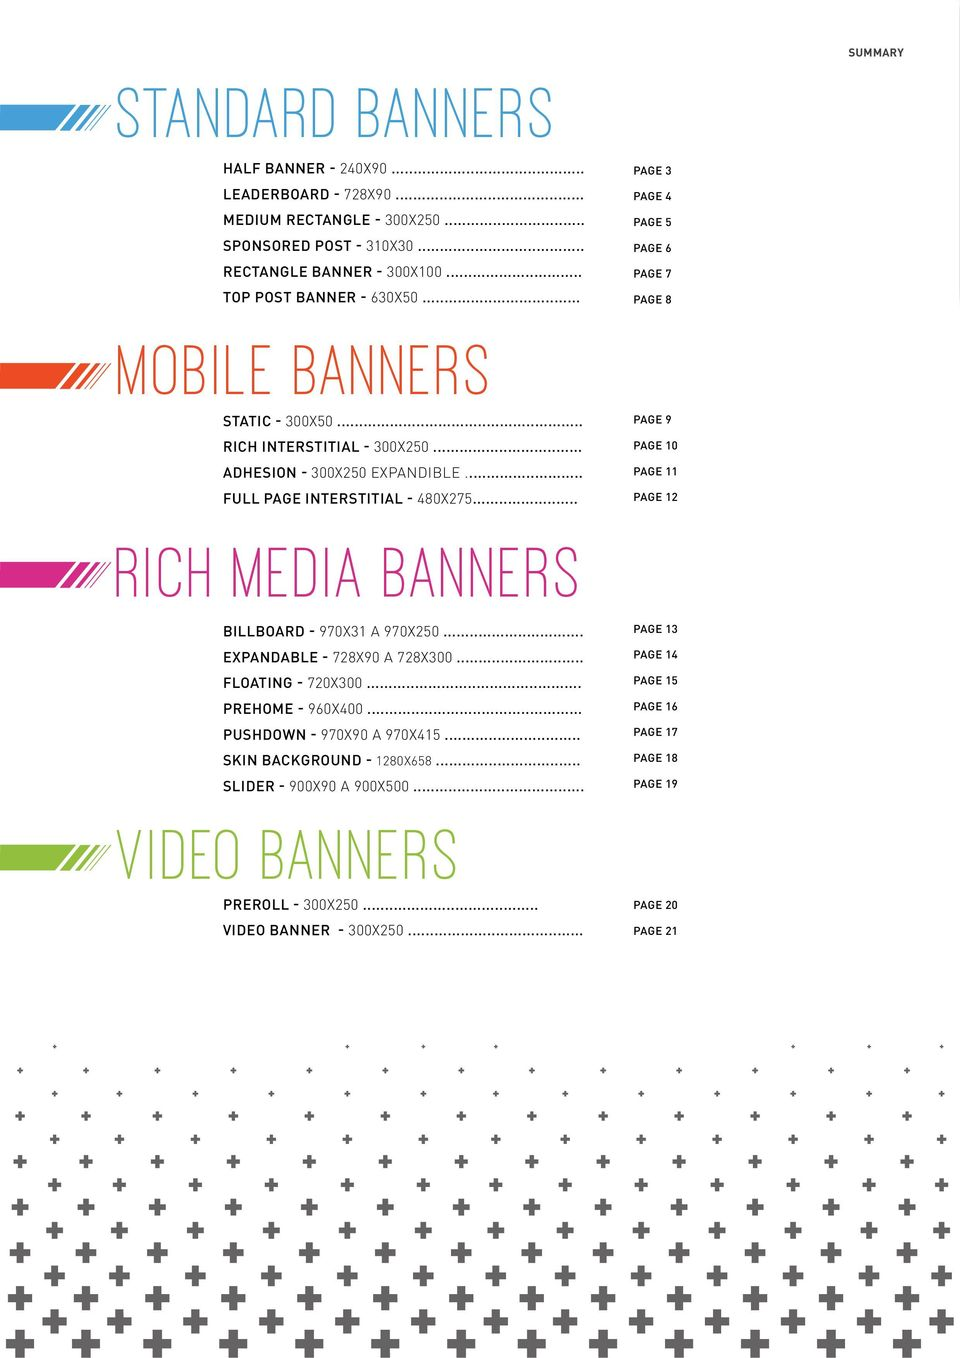 .. page 9 page 10 page 11 page 12 RICH MEDIA BANNERS billboard - 970x31 a 970x250... EXPANDABLe - 728x90 a 728x300... FLOATING - 720X300... PreHome - 960X400.